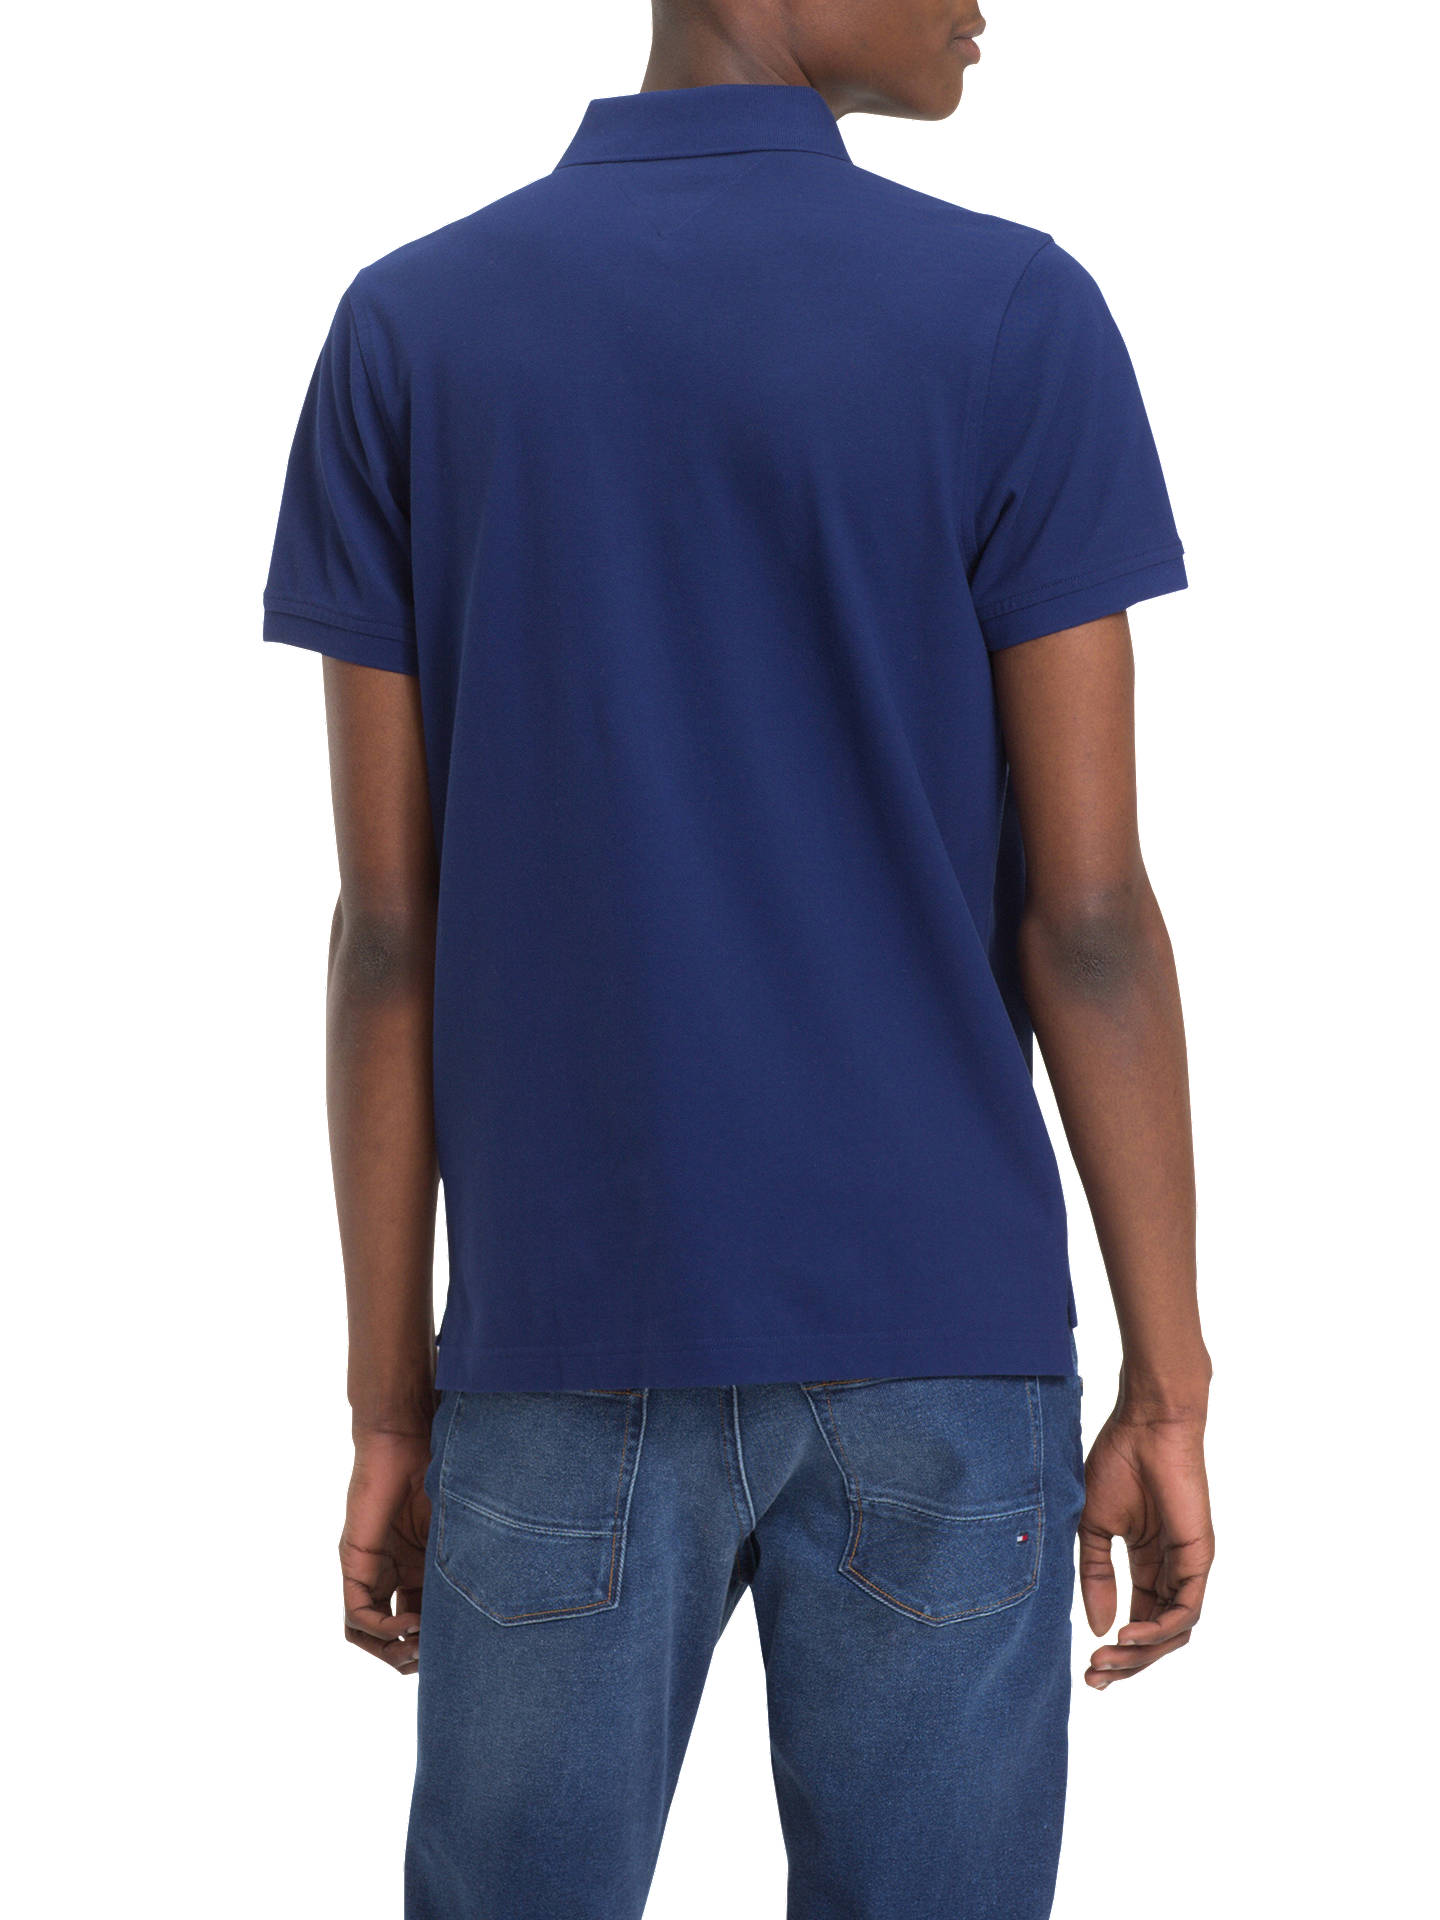 666cbfa5 ... Buy Tommy Hilfiger Slim Polo Shirt, Blue, S Online at johnlewis.com ...